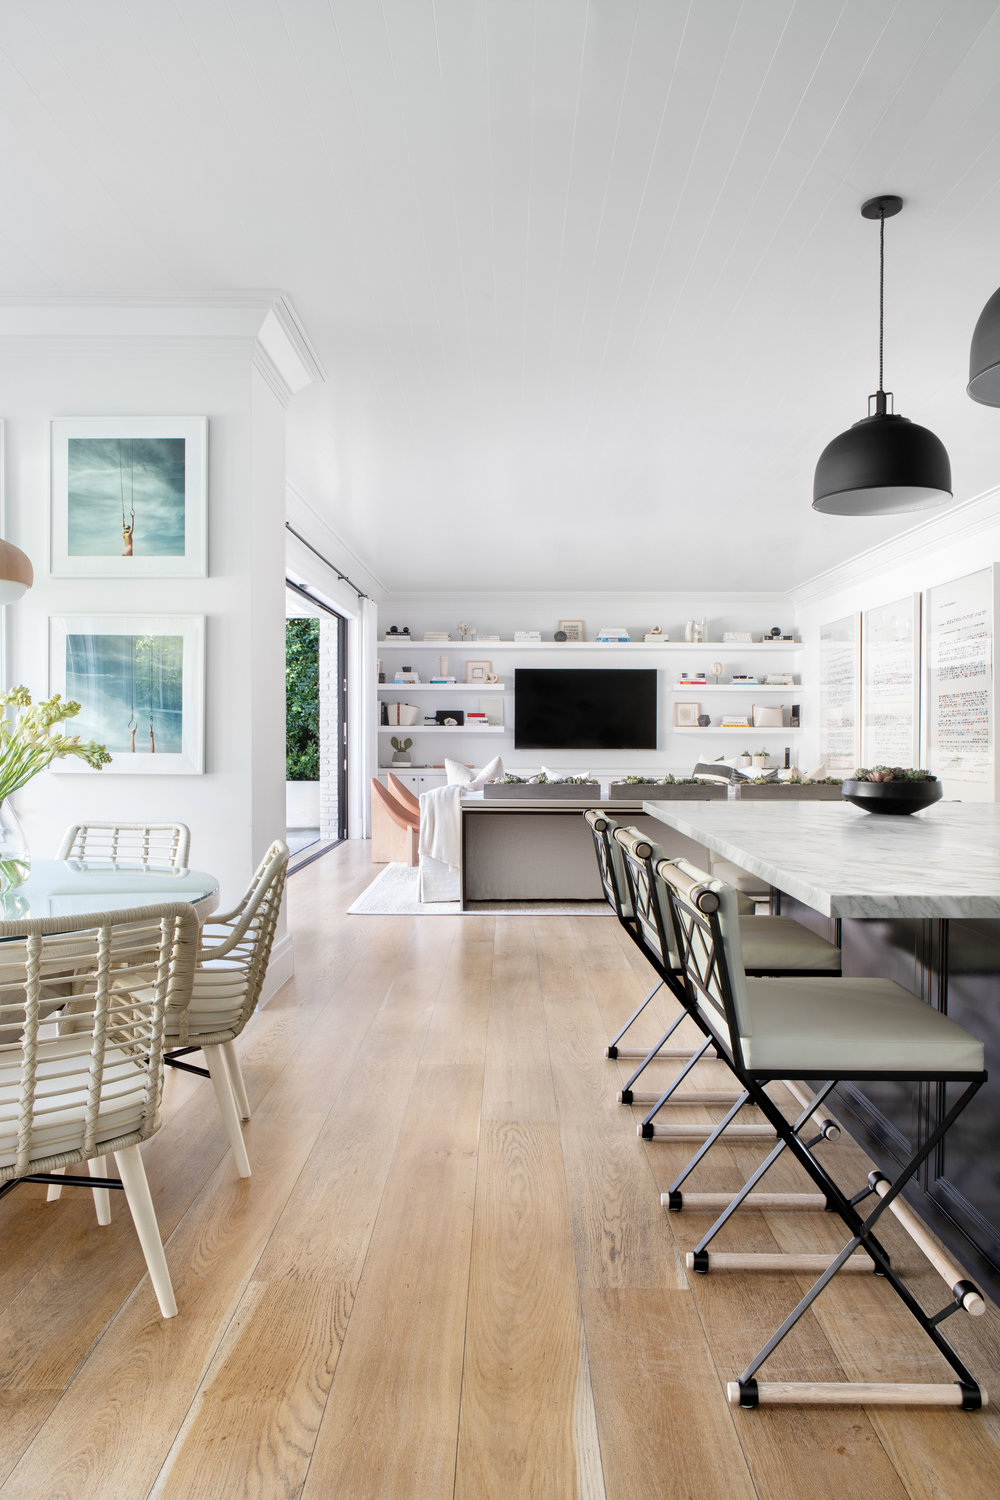 19.+Los+Angeles,+Pacific+Palisades+by+Chango+&+Co.+-+.Kitchen+to+Family+Room.jpg